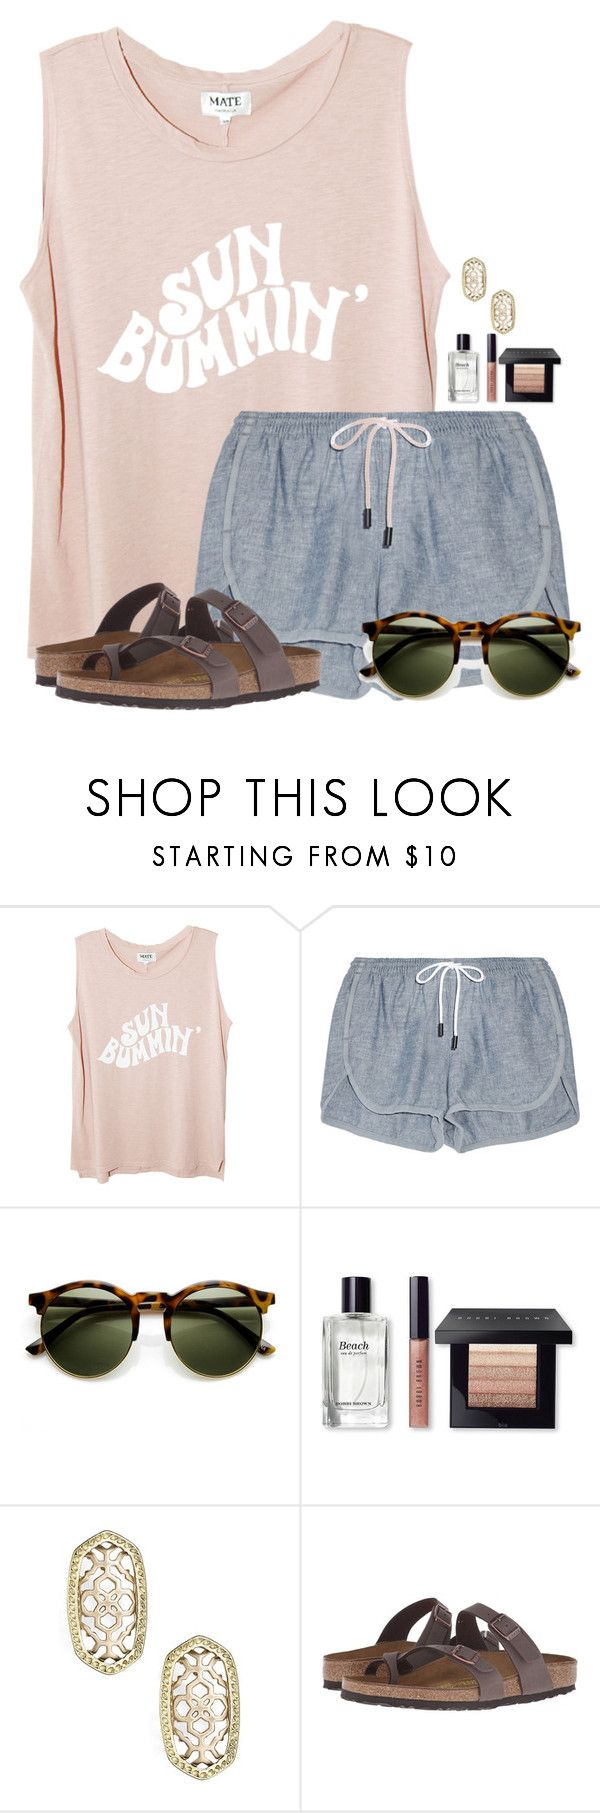 """When is yall's Spring Break?"" by flroasburn on Polyvore featuring rag & bone, Bobbi Brown Cosmetics, Kendra Scott and Birkenstock"